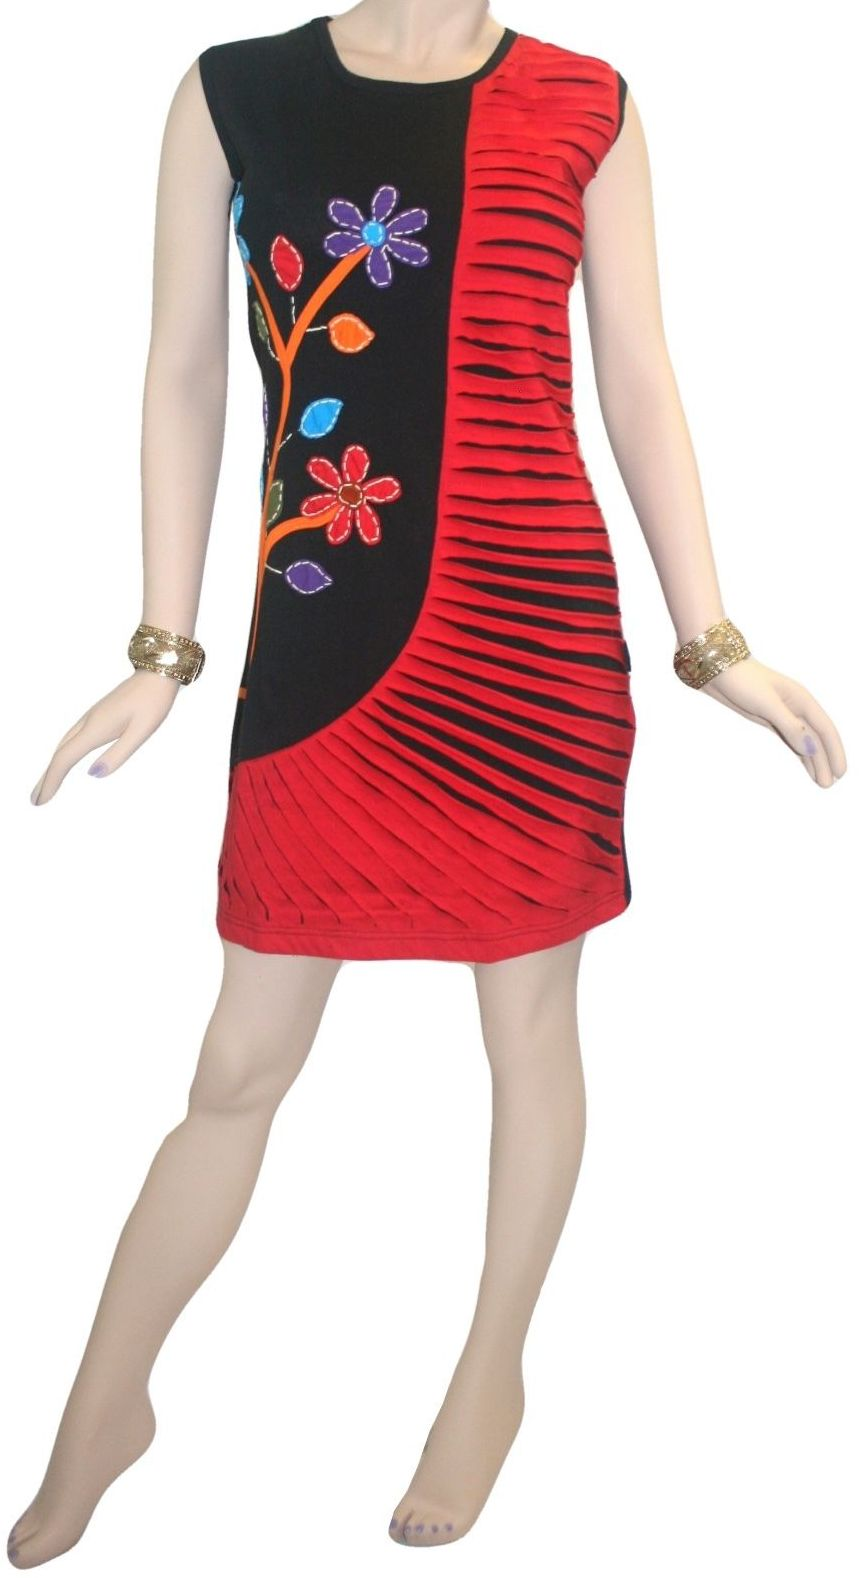 RD 17 Nepal Bohemian Cotton Summer Dress - Agan Traders, RDR Multi 17